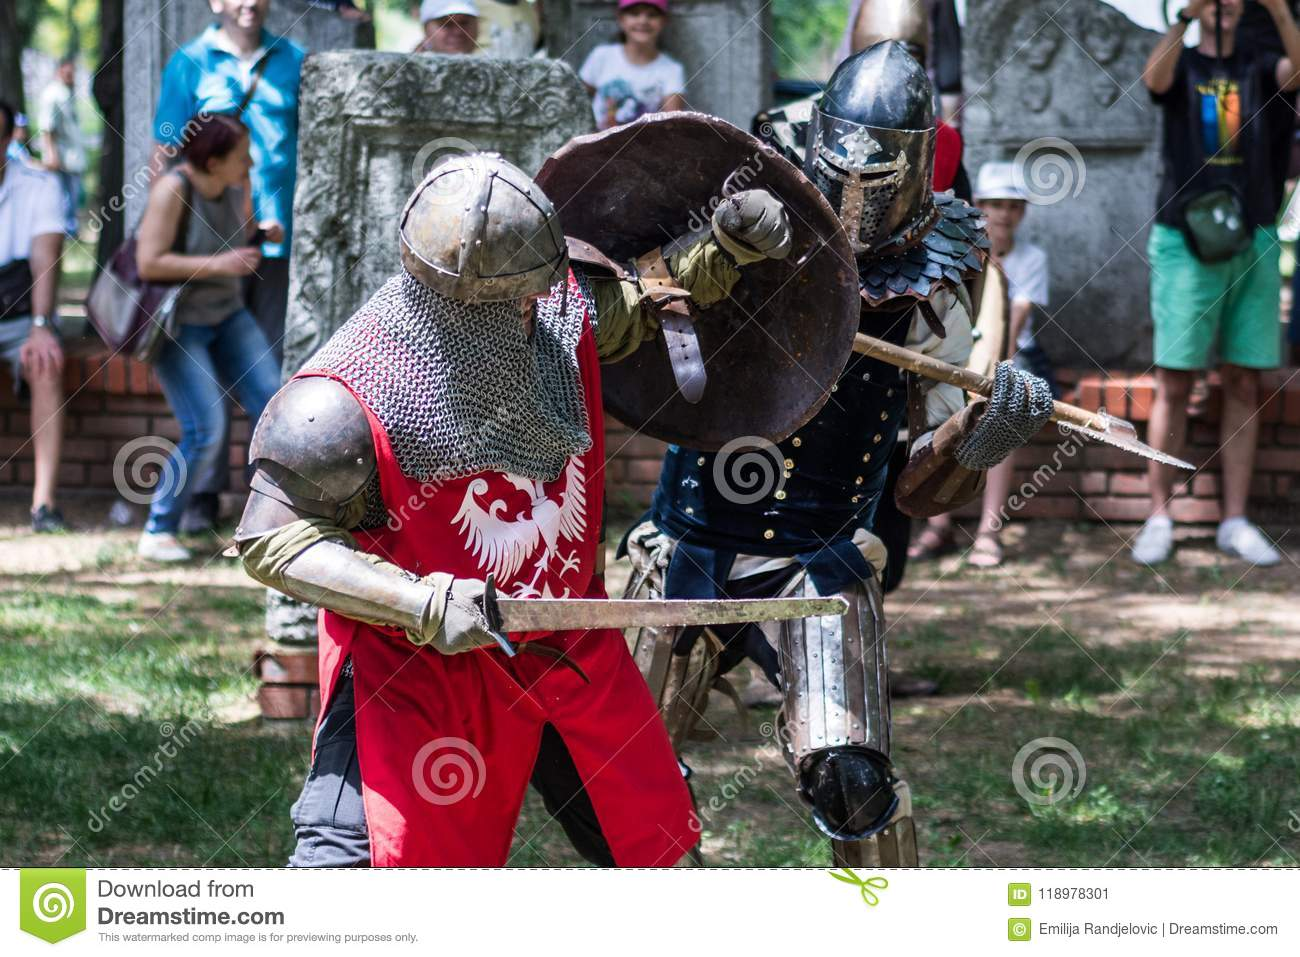 Two medieval knights fighting with hard weapon in armor in nature